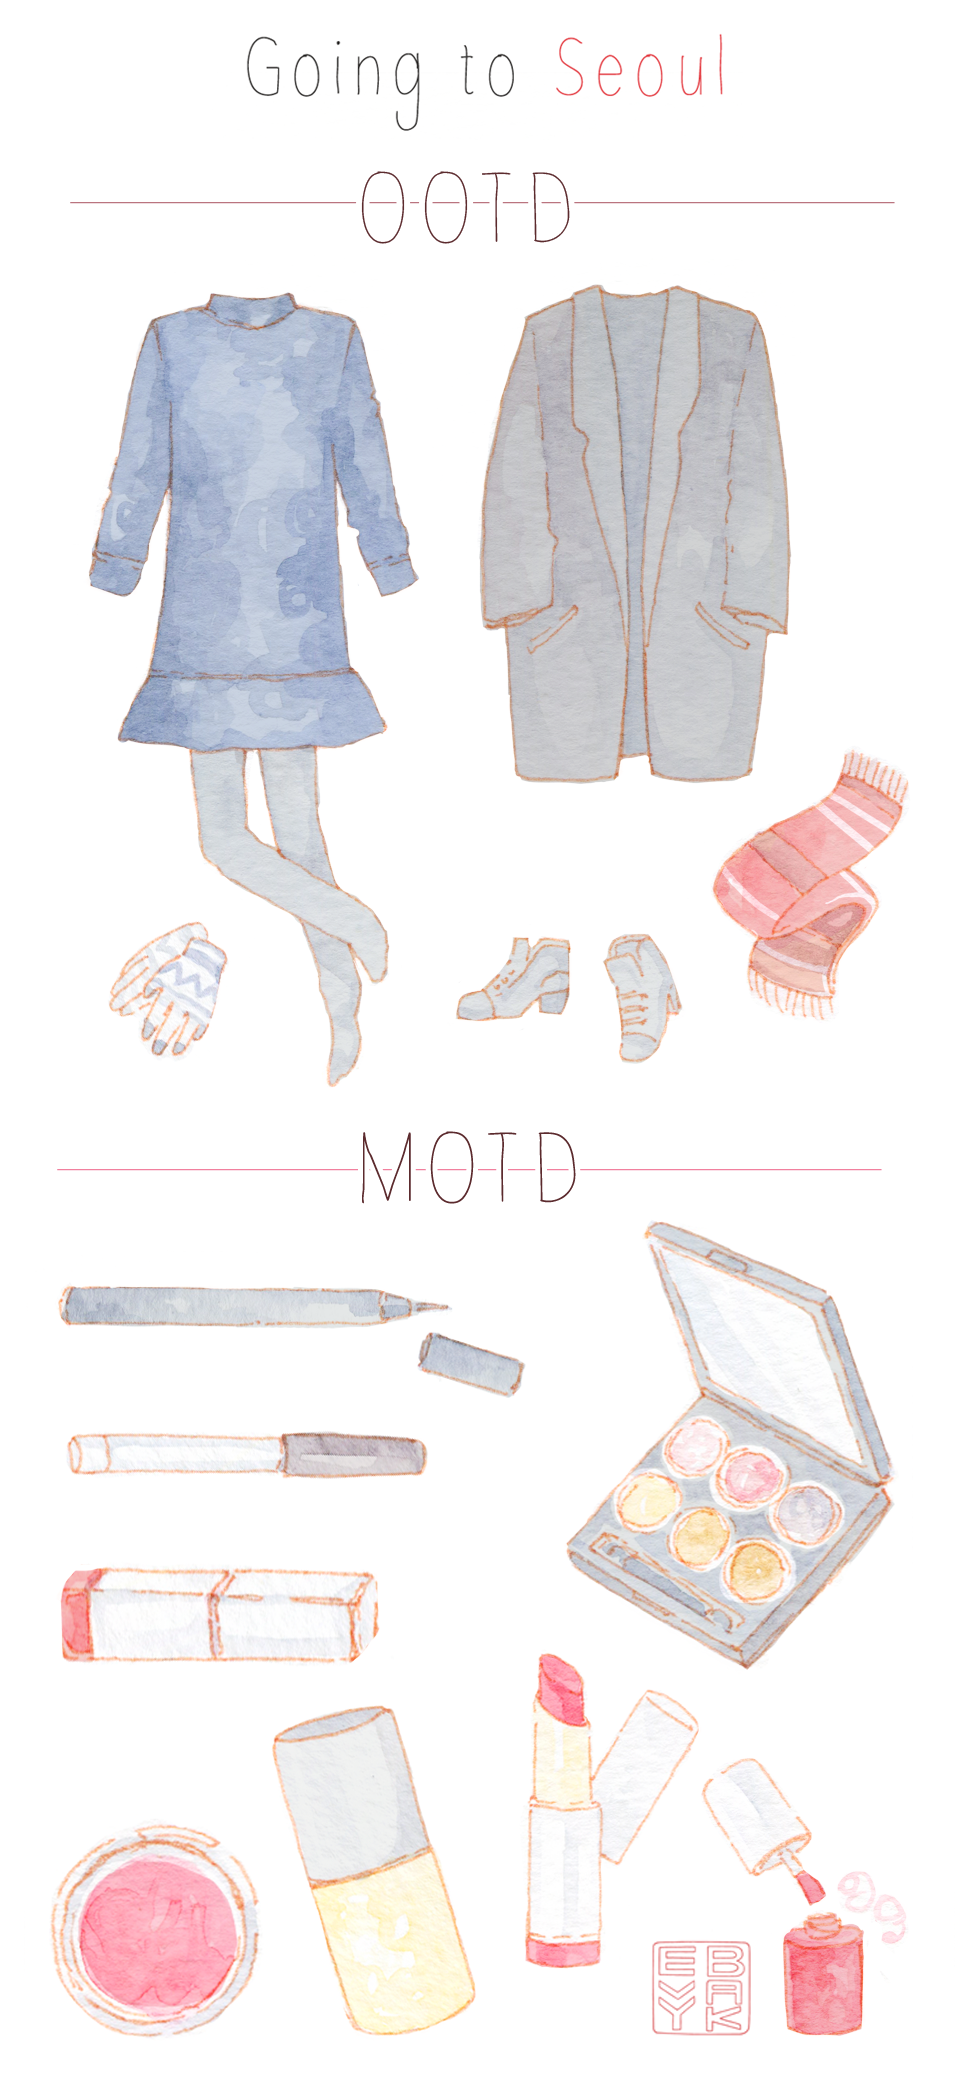 MOTD and OOTD illustrations for a day in Seoul. Simple, minimalist daily outfit for mild winter days, and Korean makeup favorites for a quick, flight-appropriate makeup. Fashion illustration & Daily Look Sketch Diary on the blog.